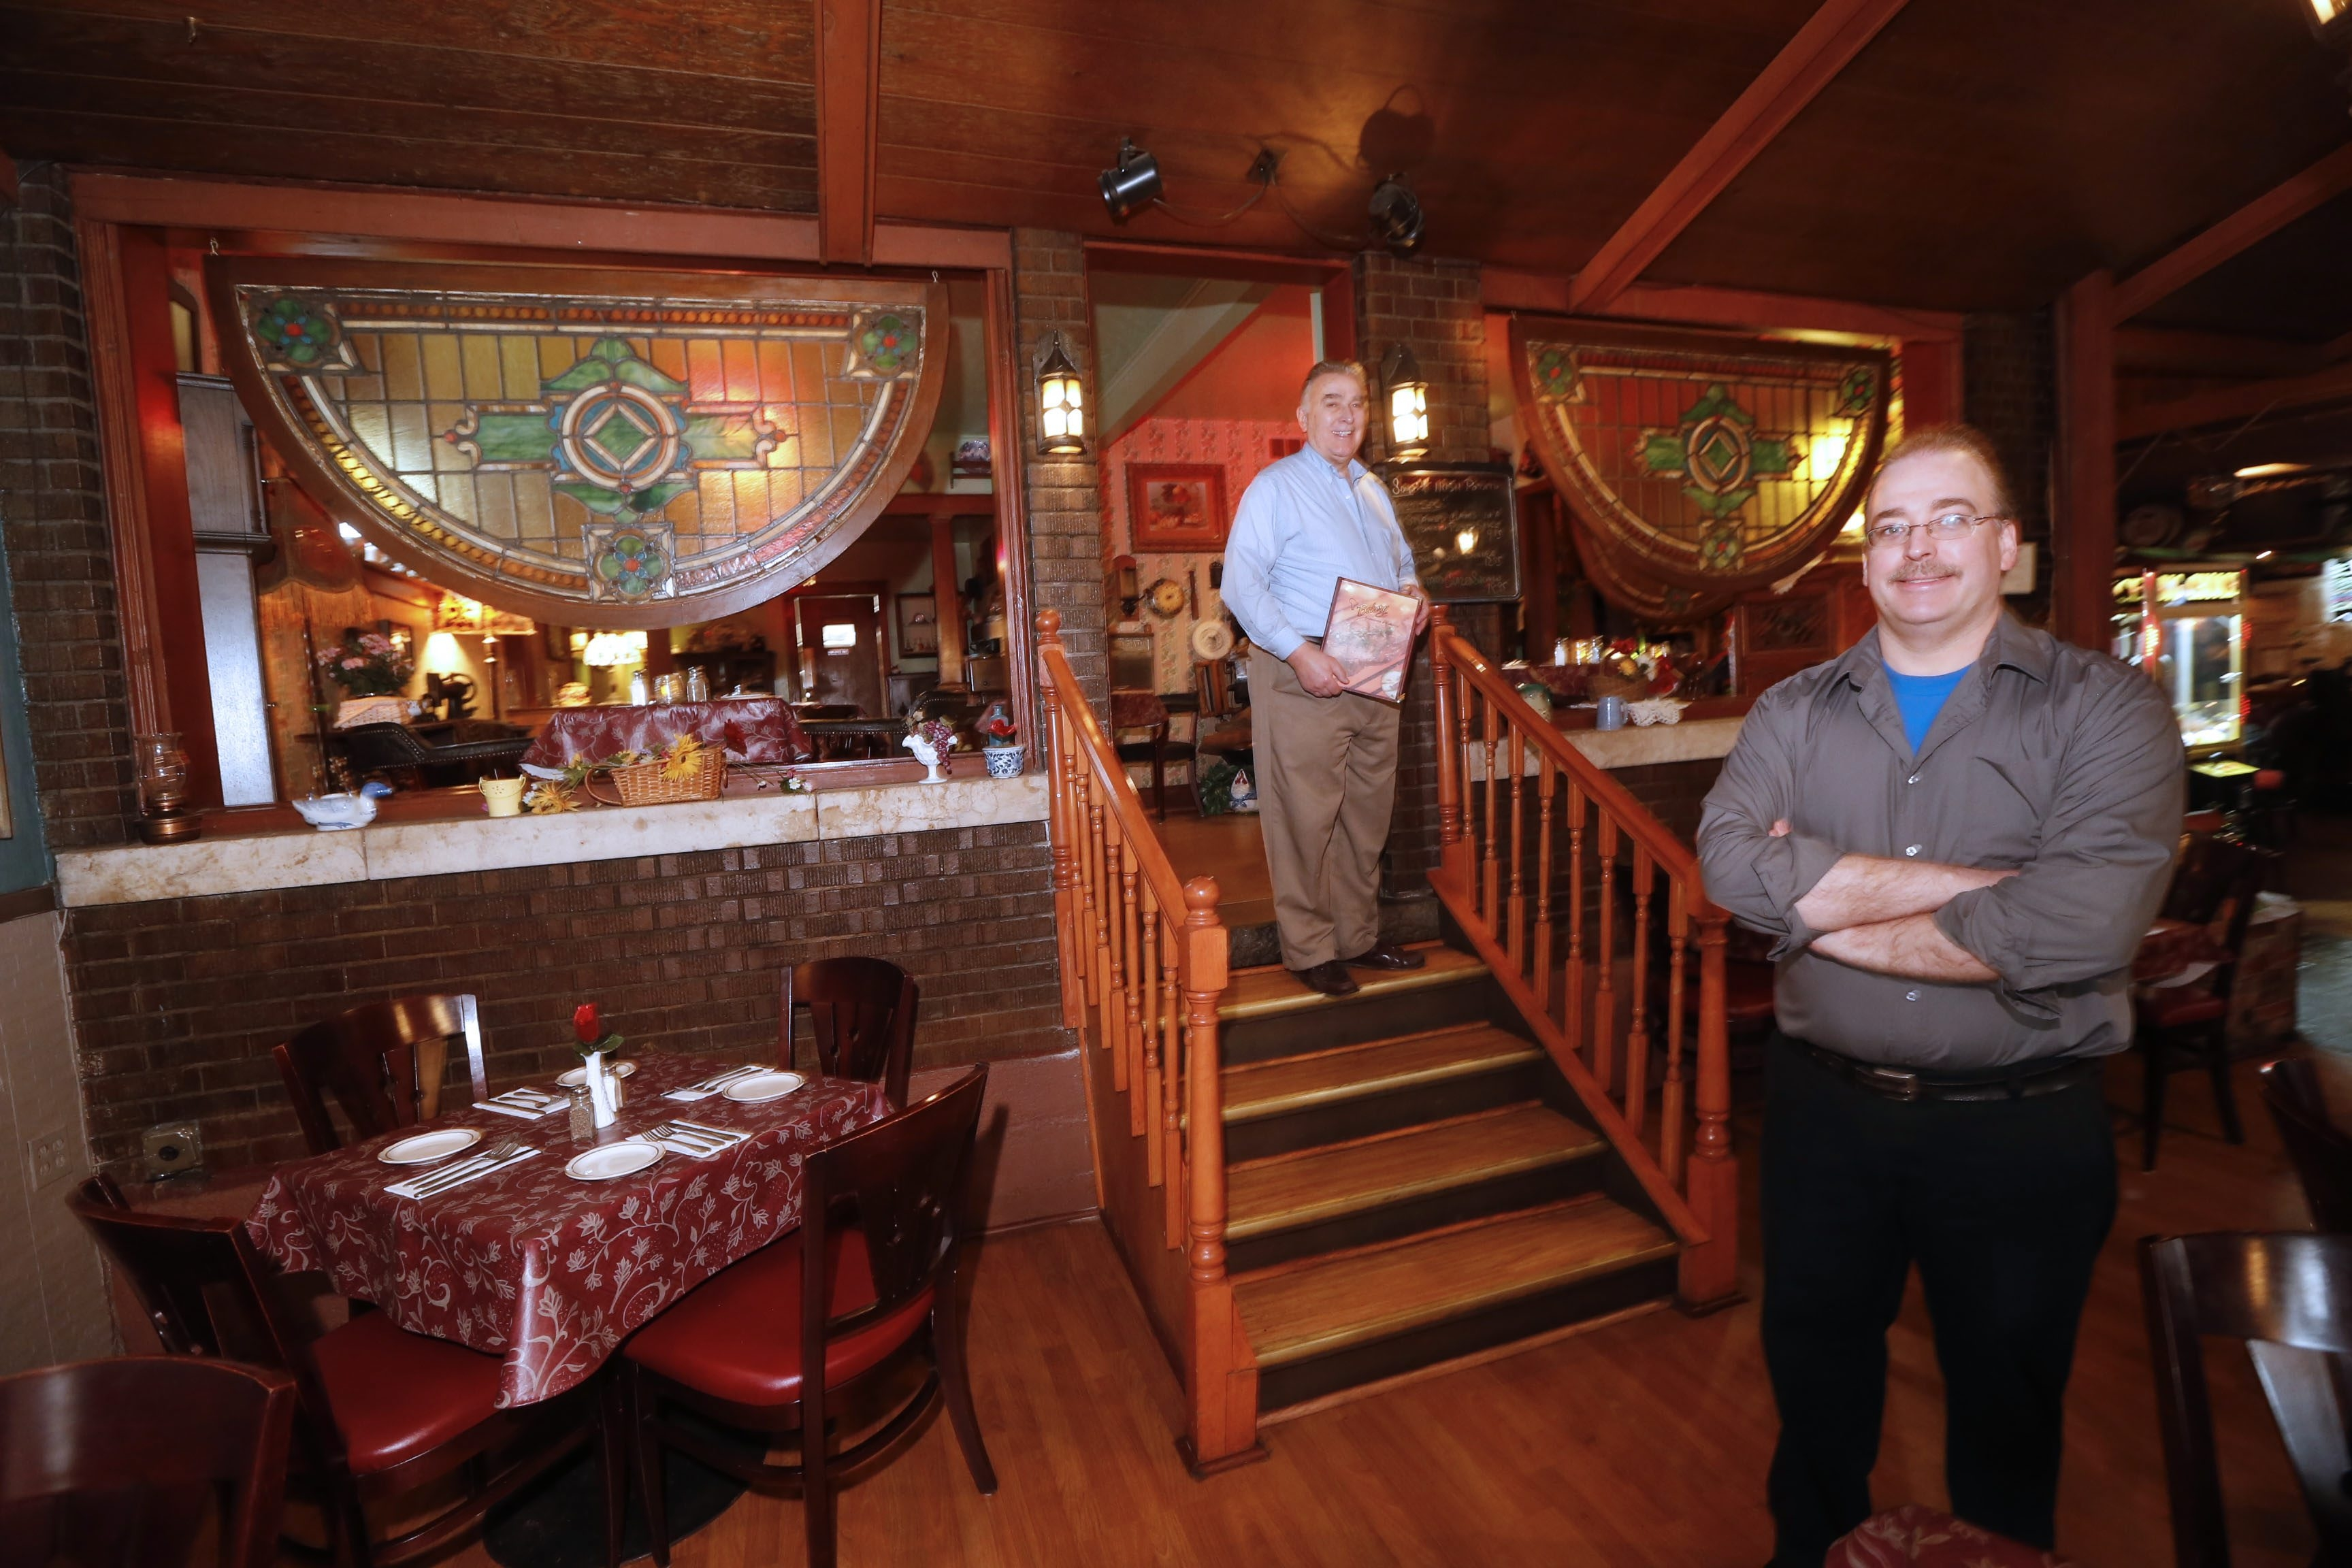 Owners Kevin Young, left, and David Young stand amid the homey ambience of the Bakery Restaurant and Lounge, which conjures up a turn of the century feel.